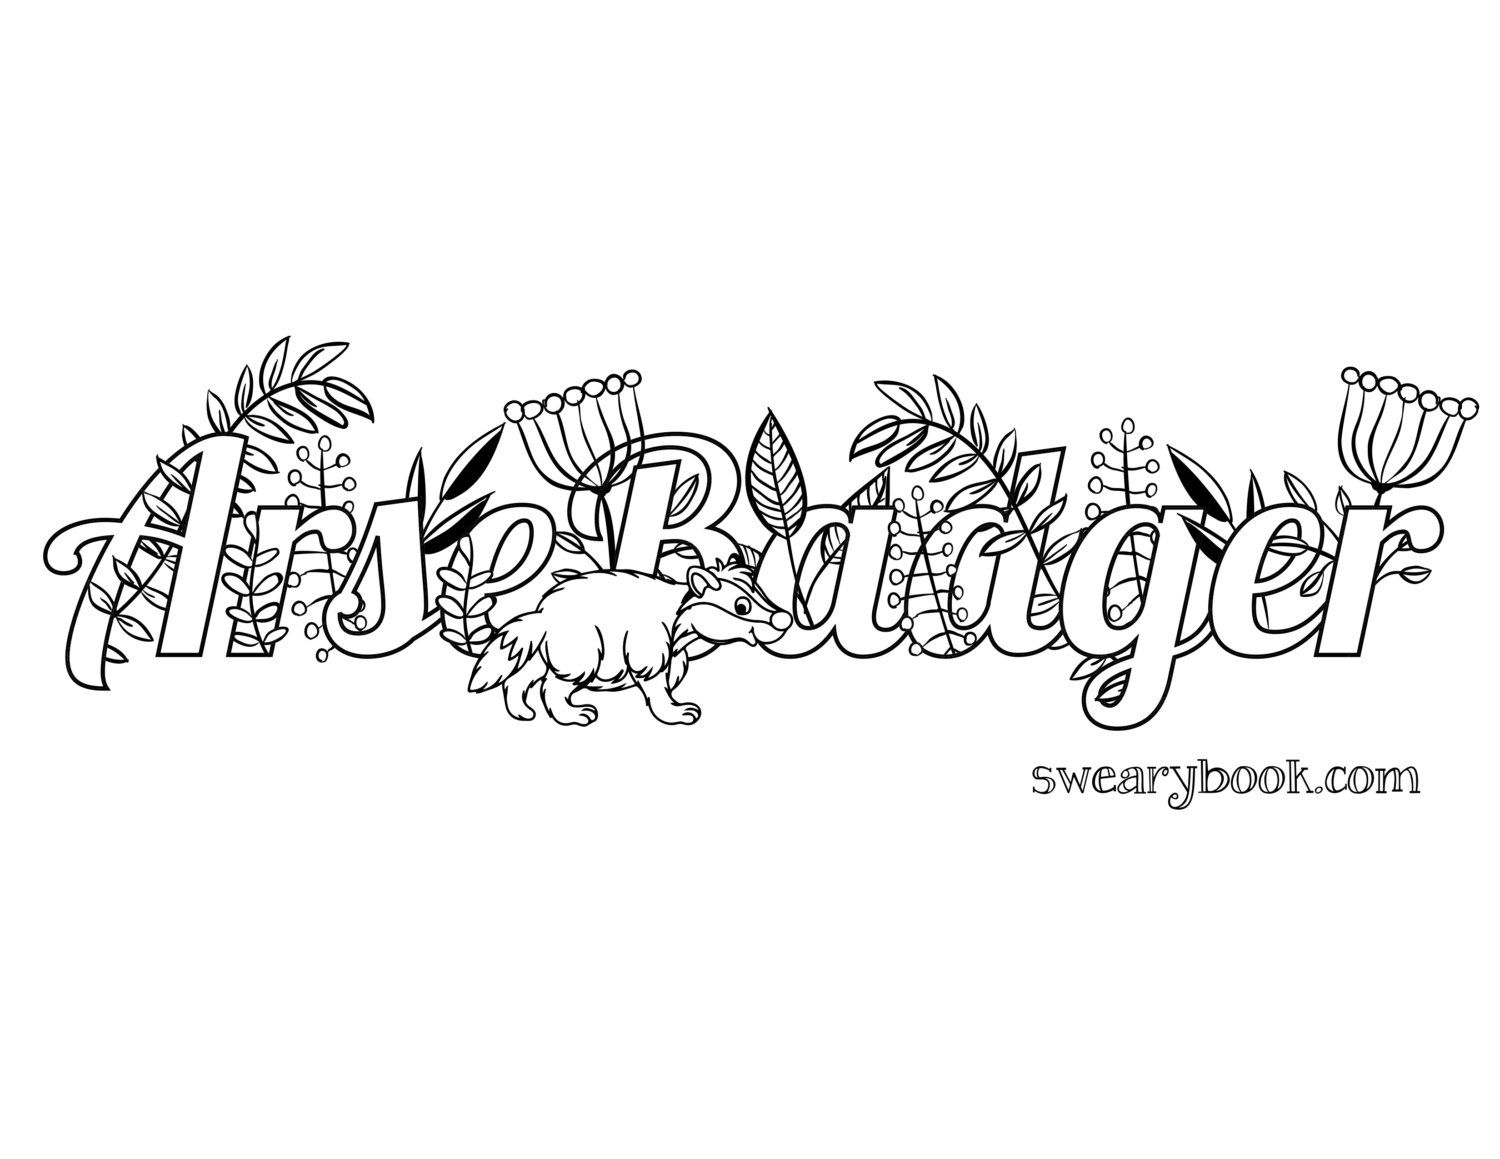 Y word coloring pages - Swearybookcom Jpg 1500 1159 Colouring